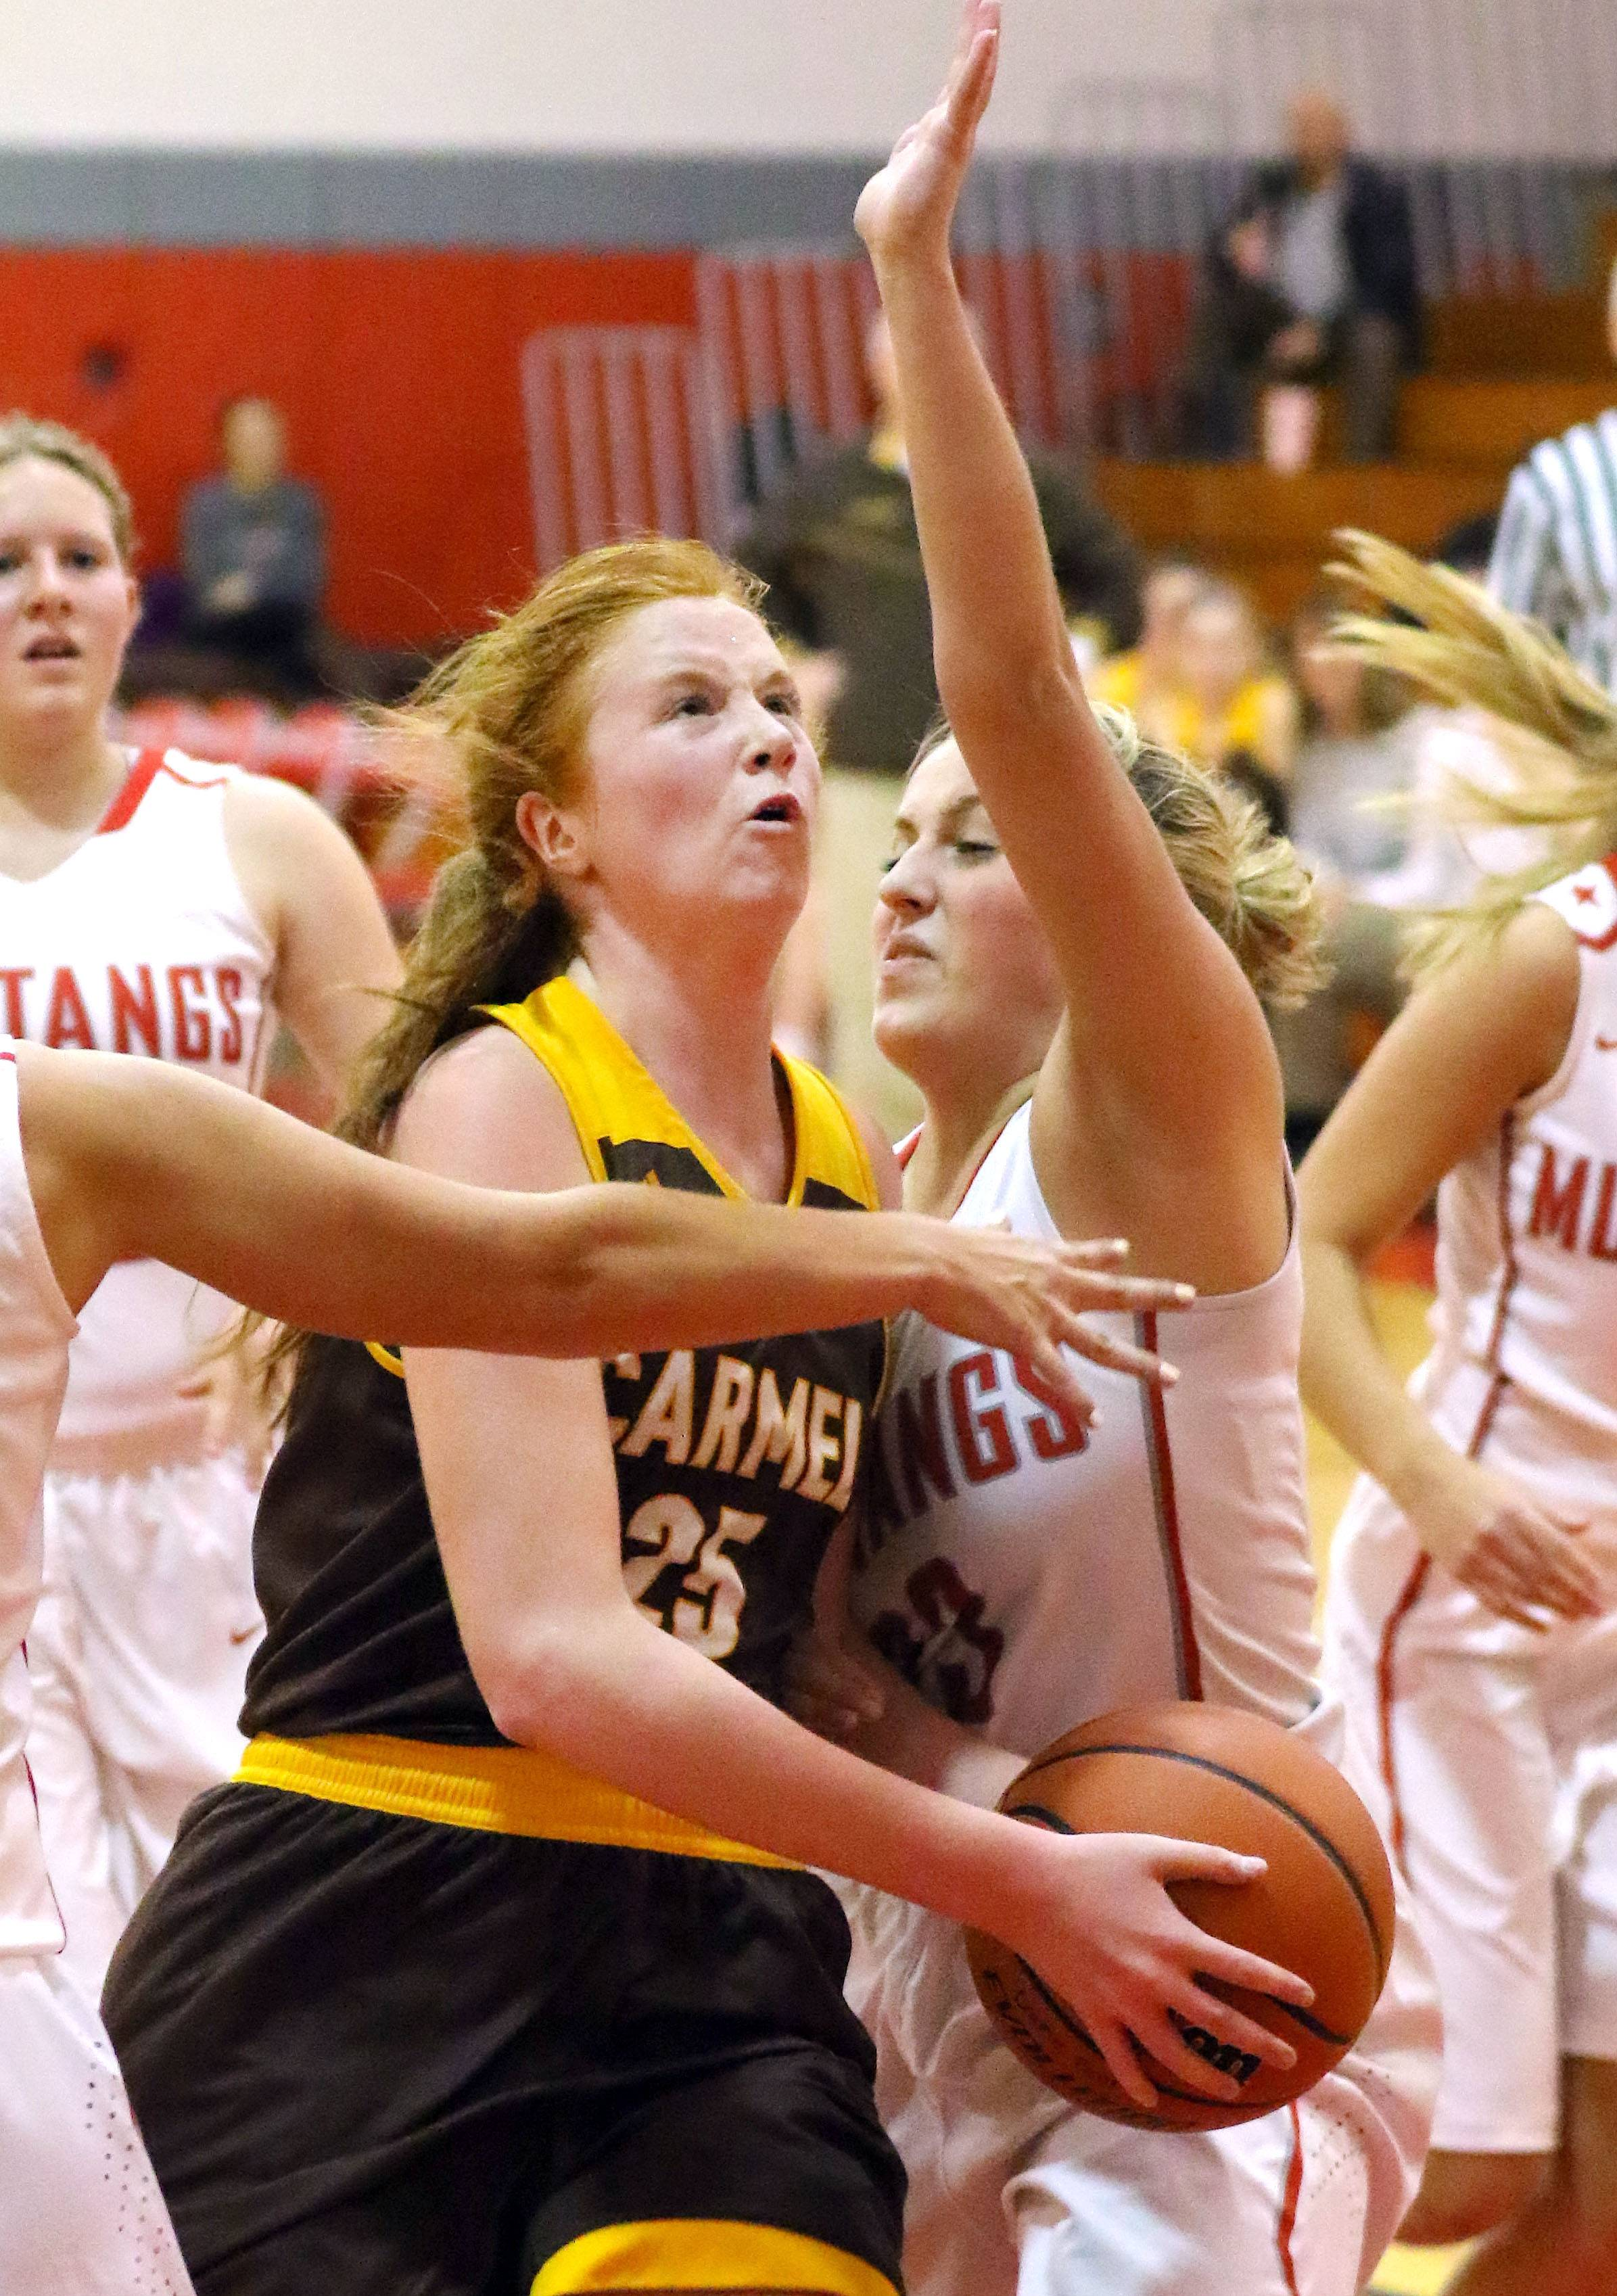 Carmel's Brigit Barr, left, drives on Mundelein's Madison Parola on Tuesday at Mundelein.